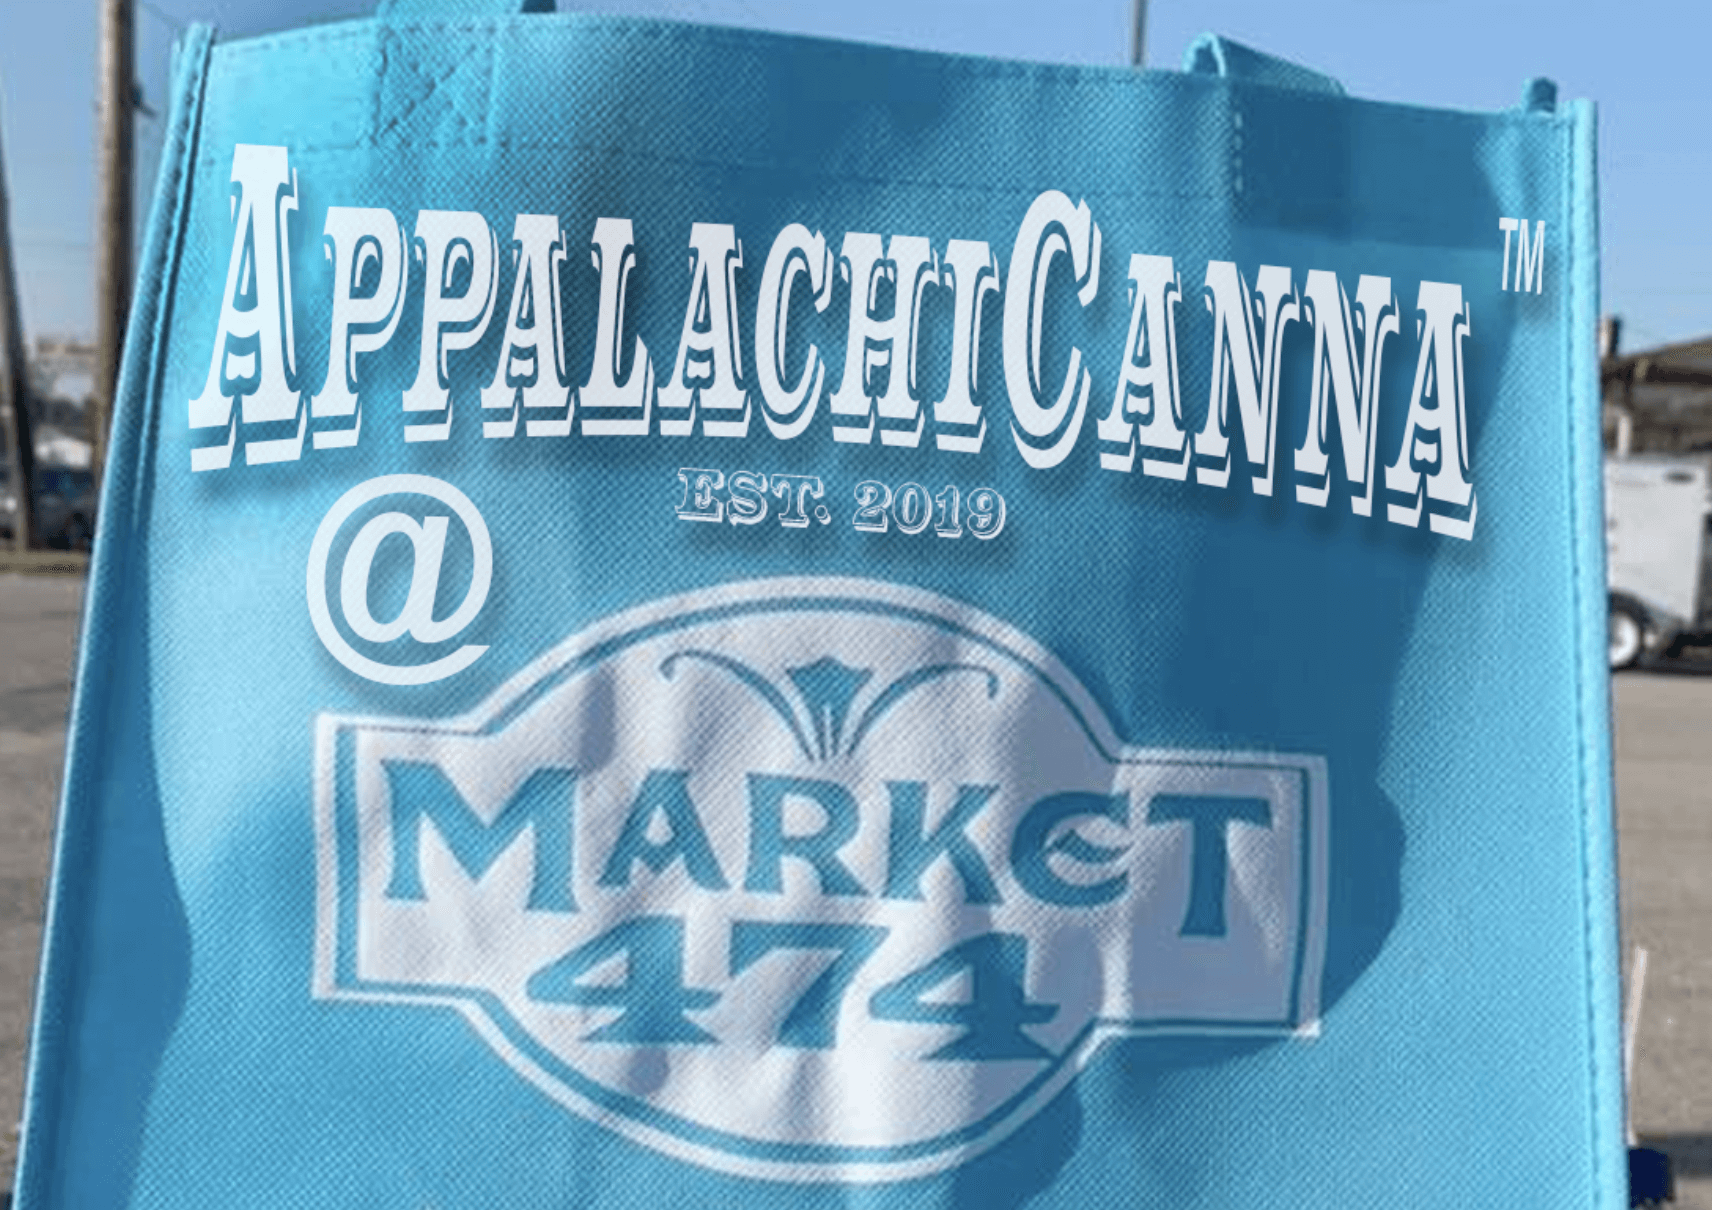 Find us at Market 474 this summer! First date is June 13, 2020!